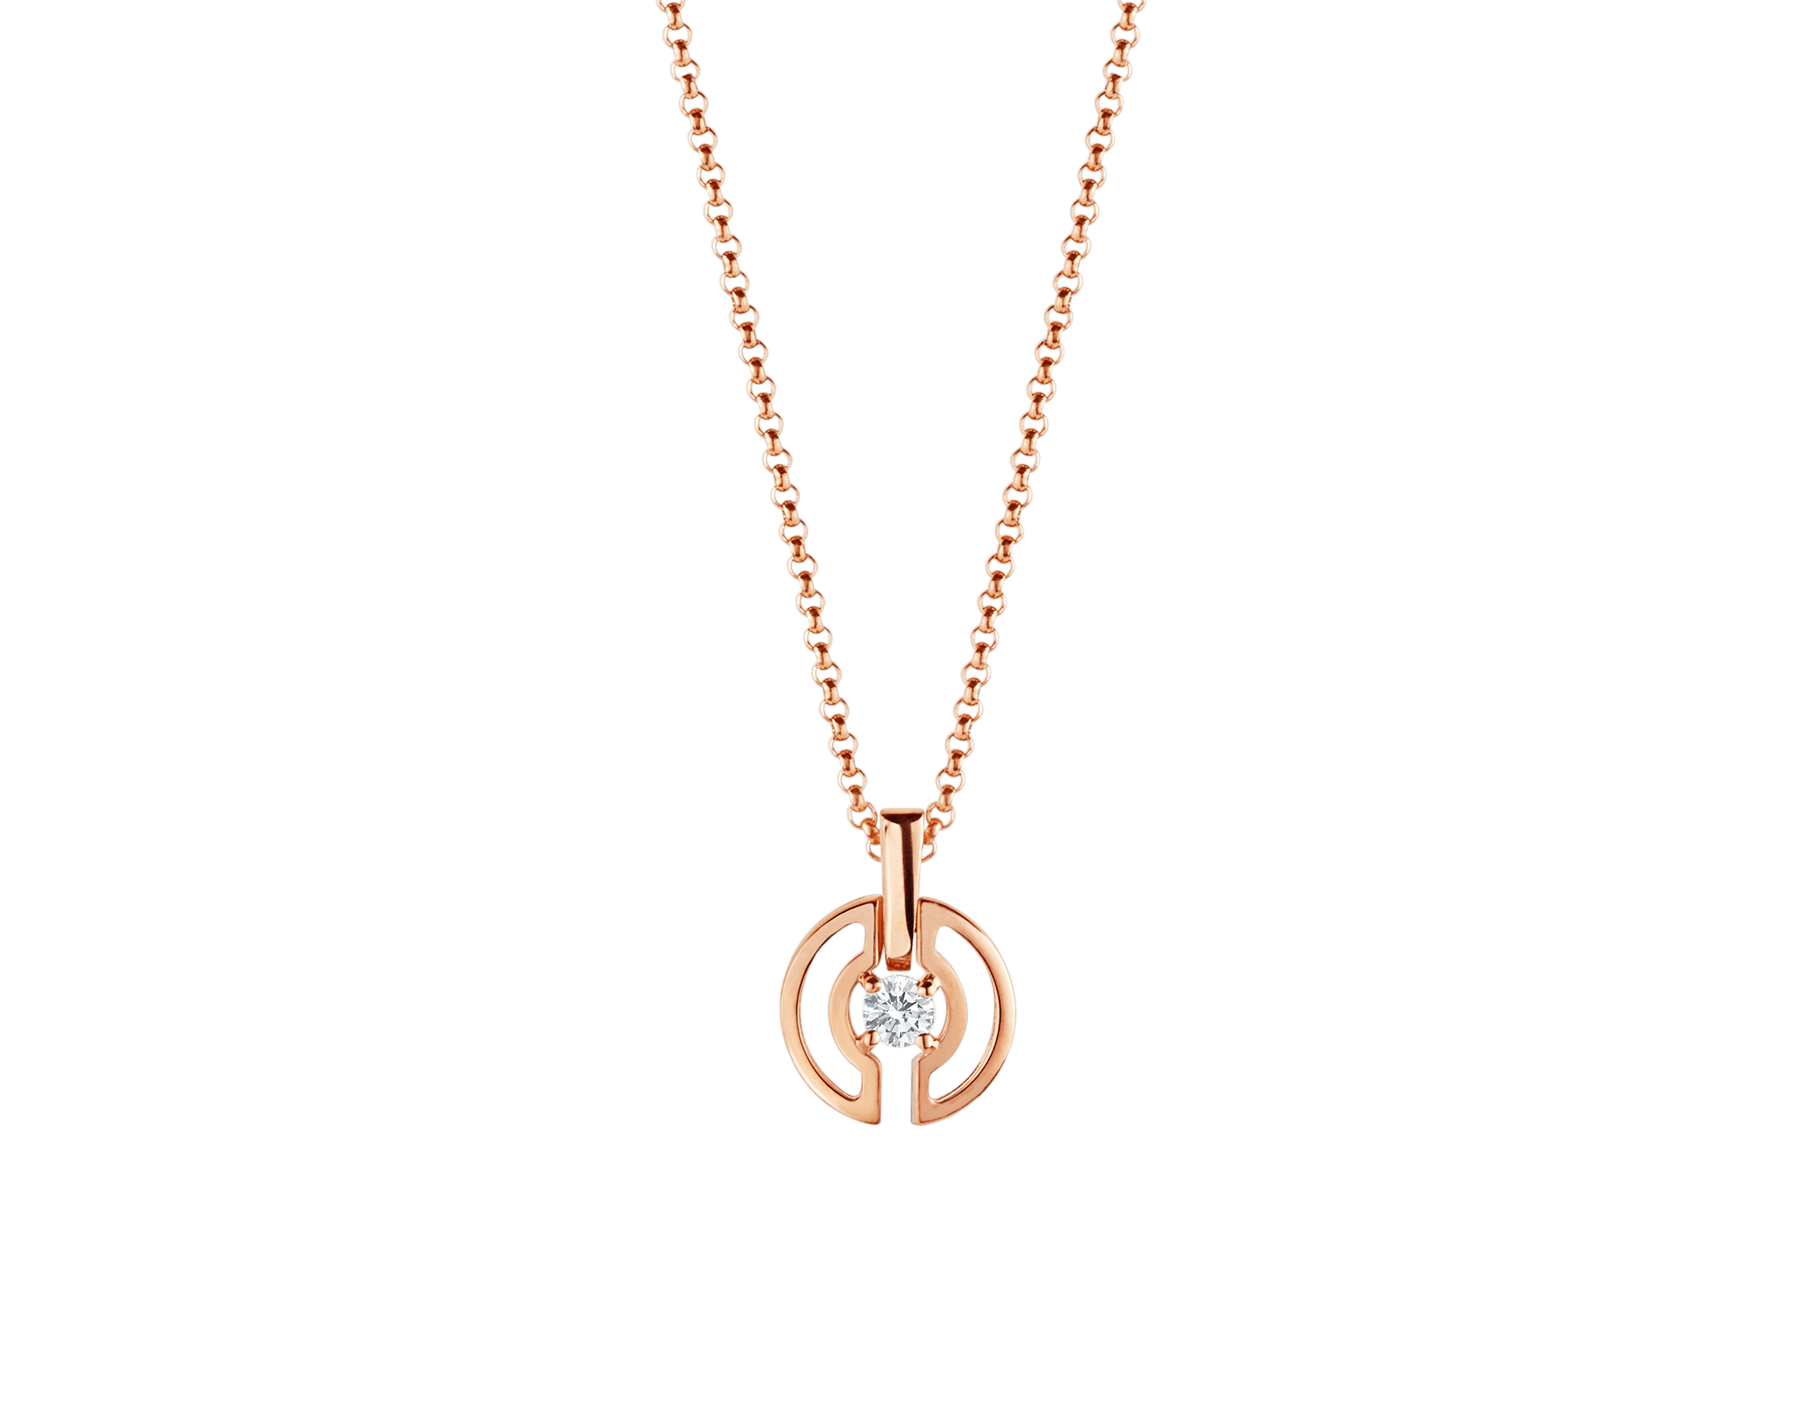 Parentesi necklace with 18 kt rose gold chain and pendant, set with a central diamond. 354605 image 1